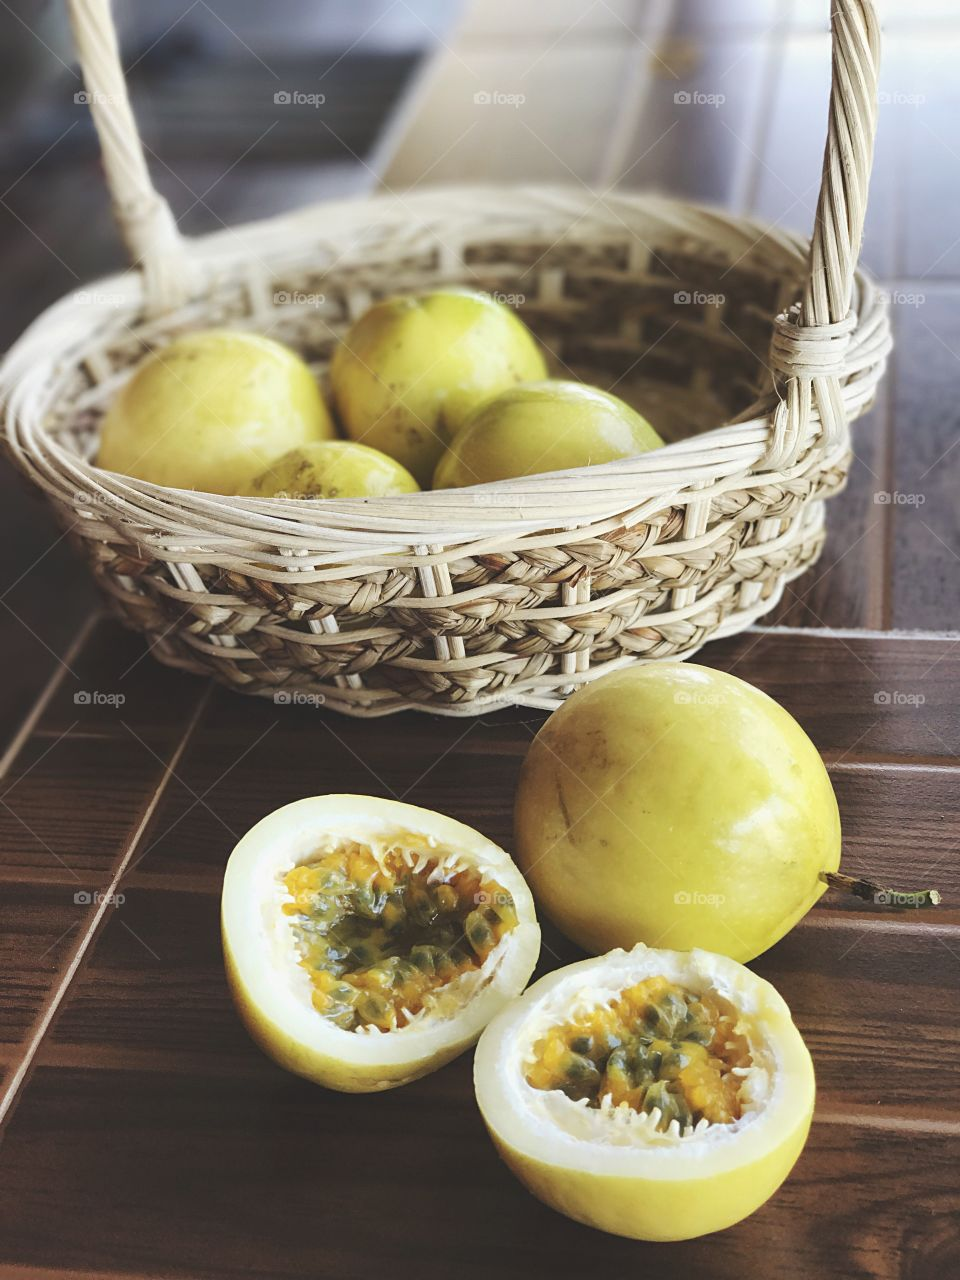 Half-cut passion fruits (Passiflora edulis) in and out of basket